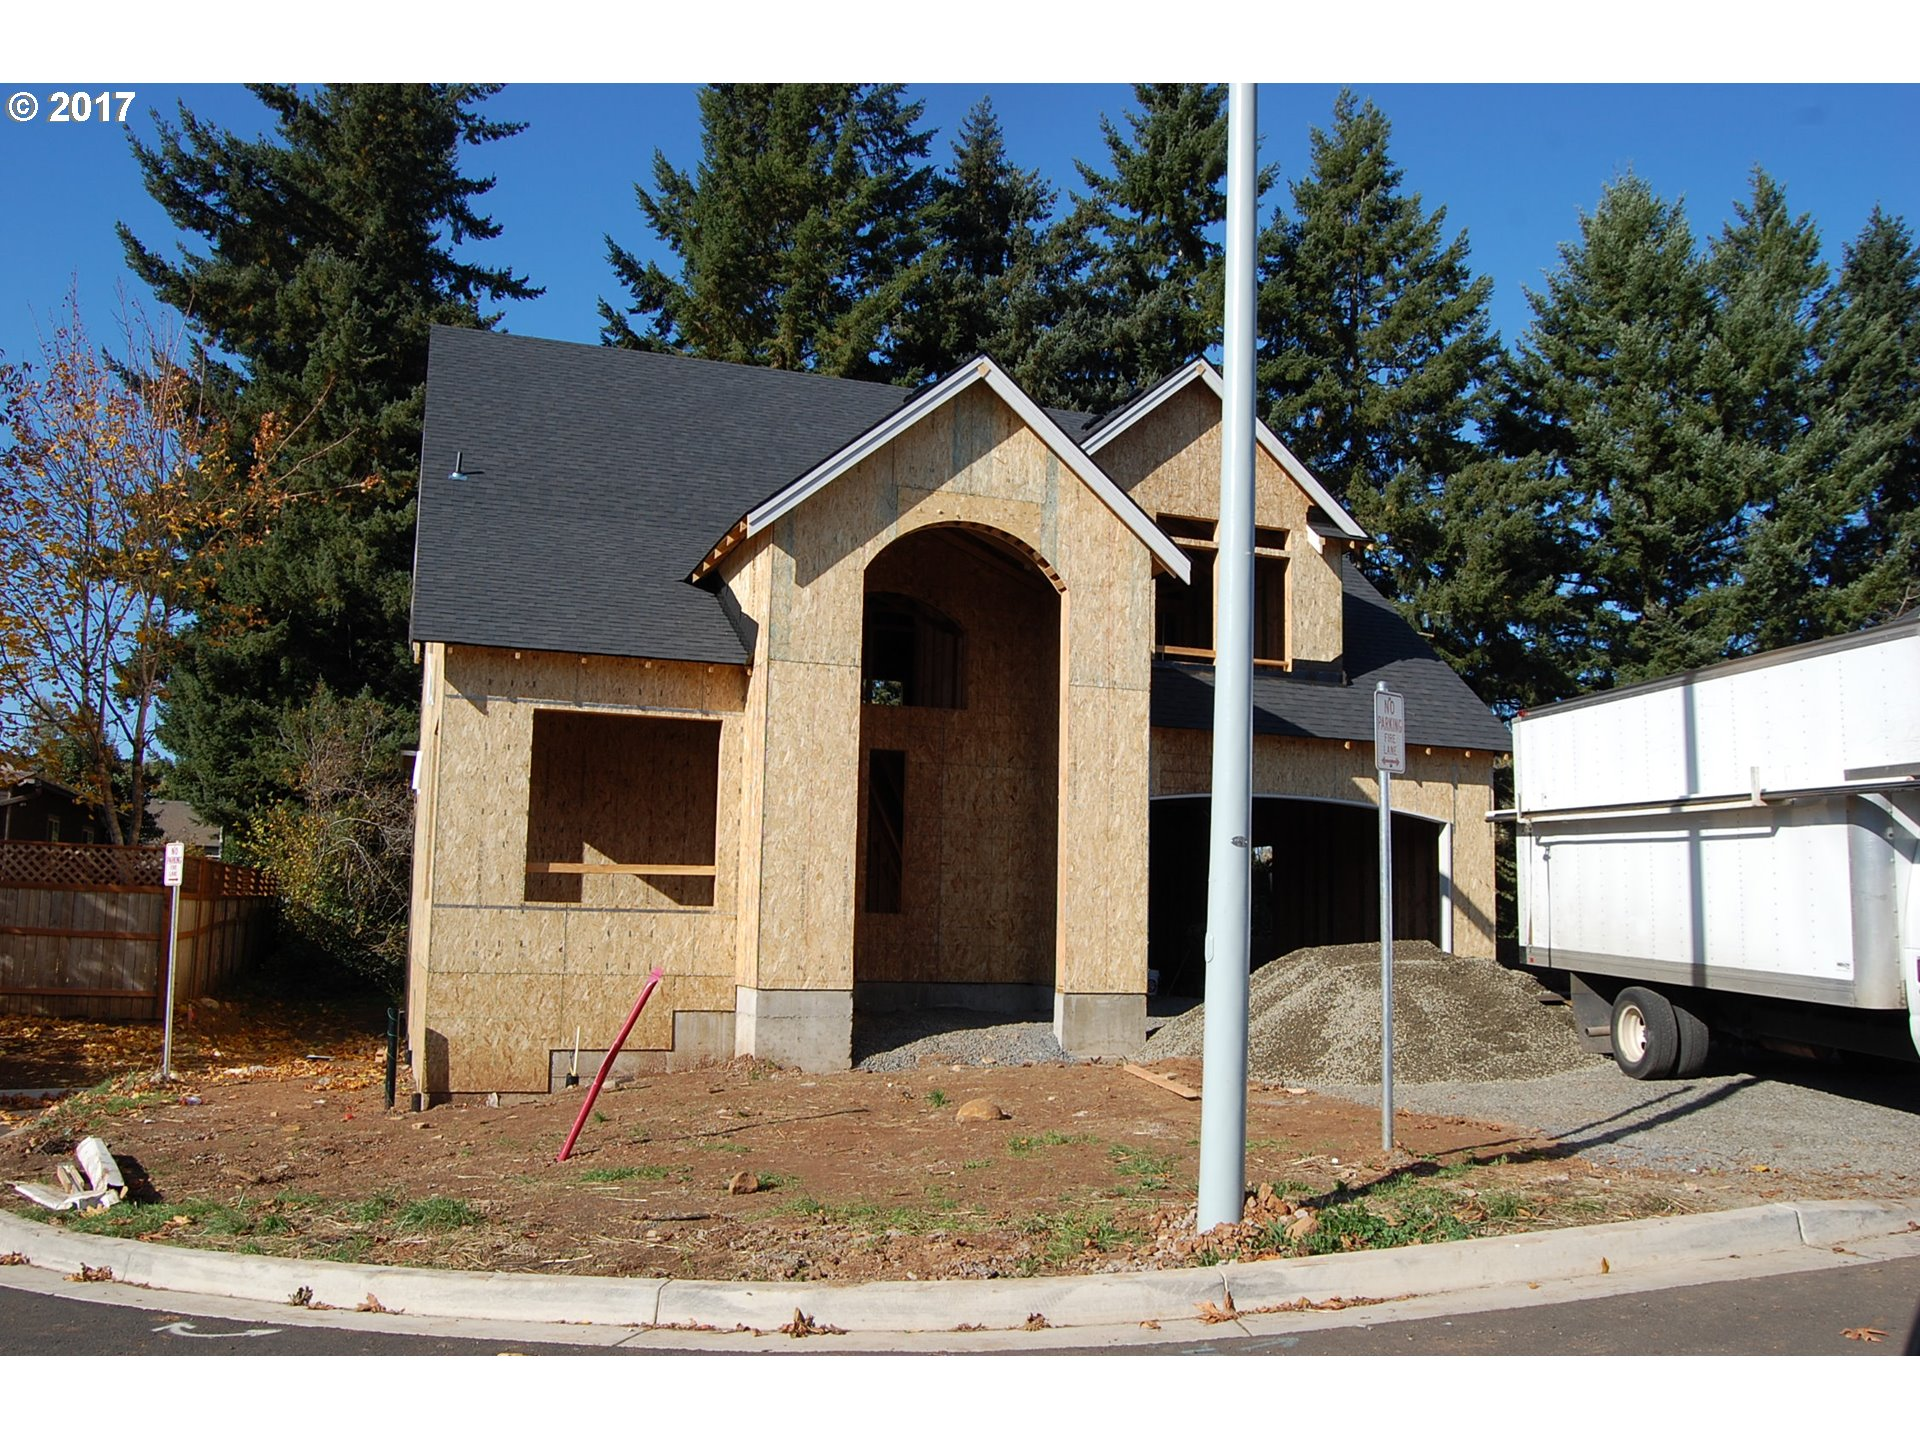 19289 boulder run ct lot12 oregon city or 97045 mls 17150524 pdx listed